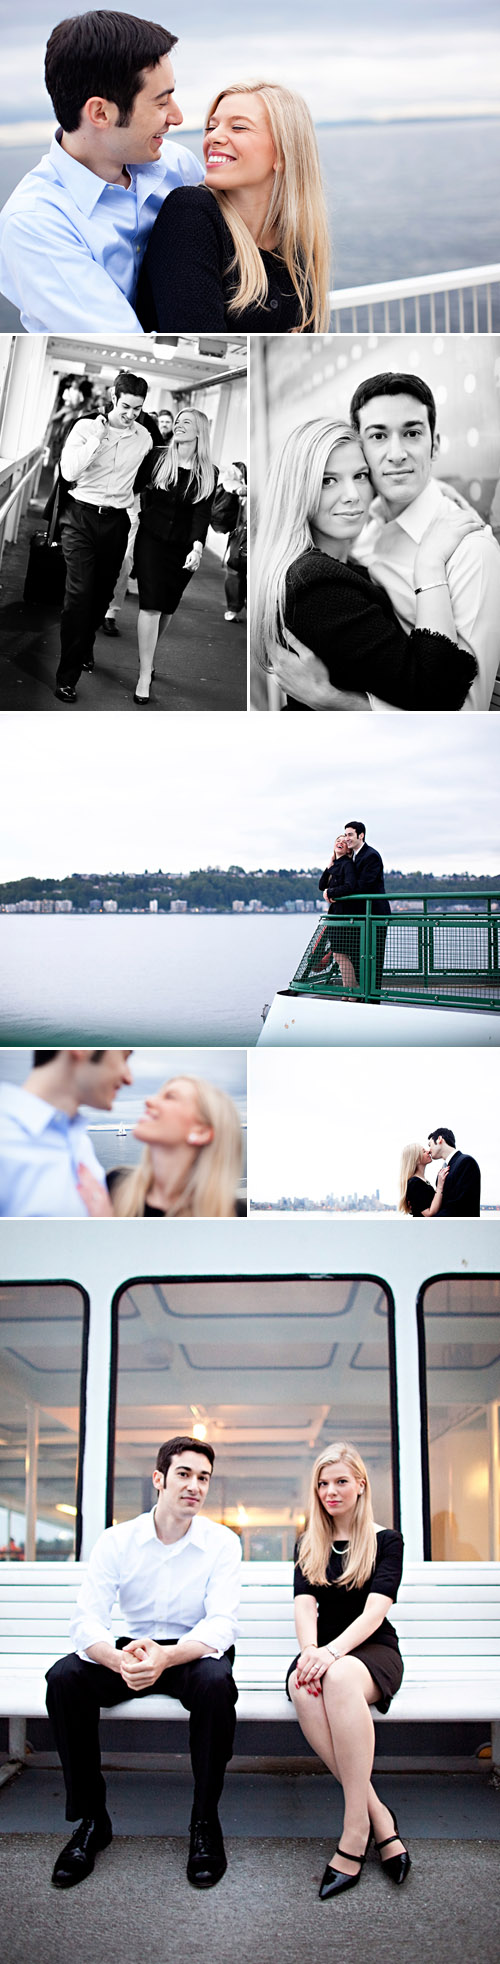 real Seattle engagement photo session on a ferry, images by GH Kim Photography